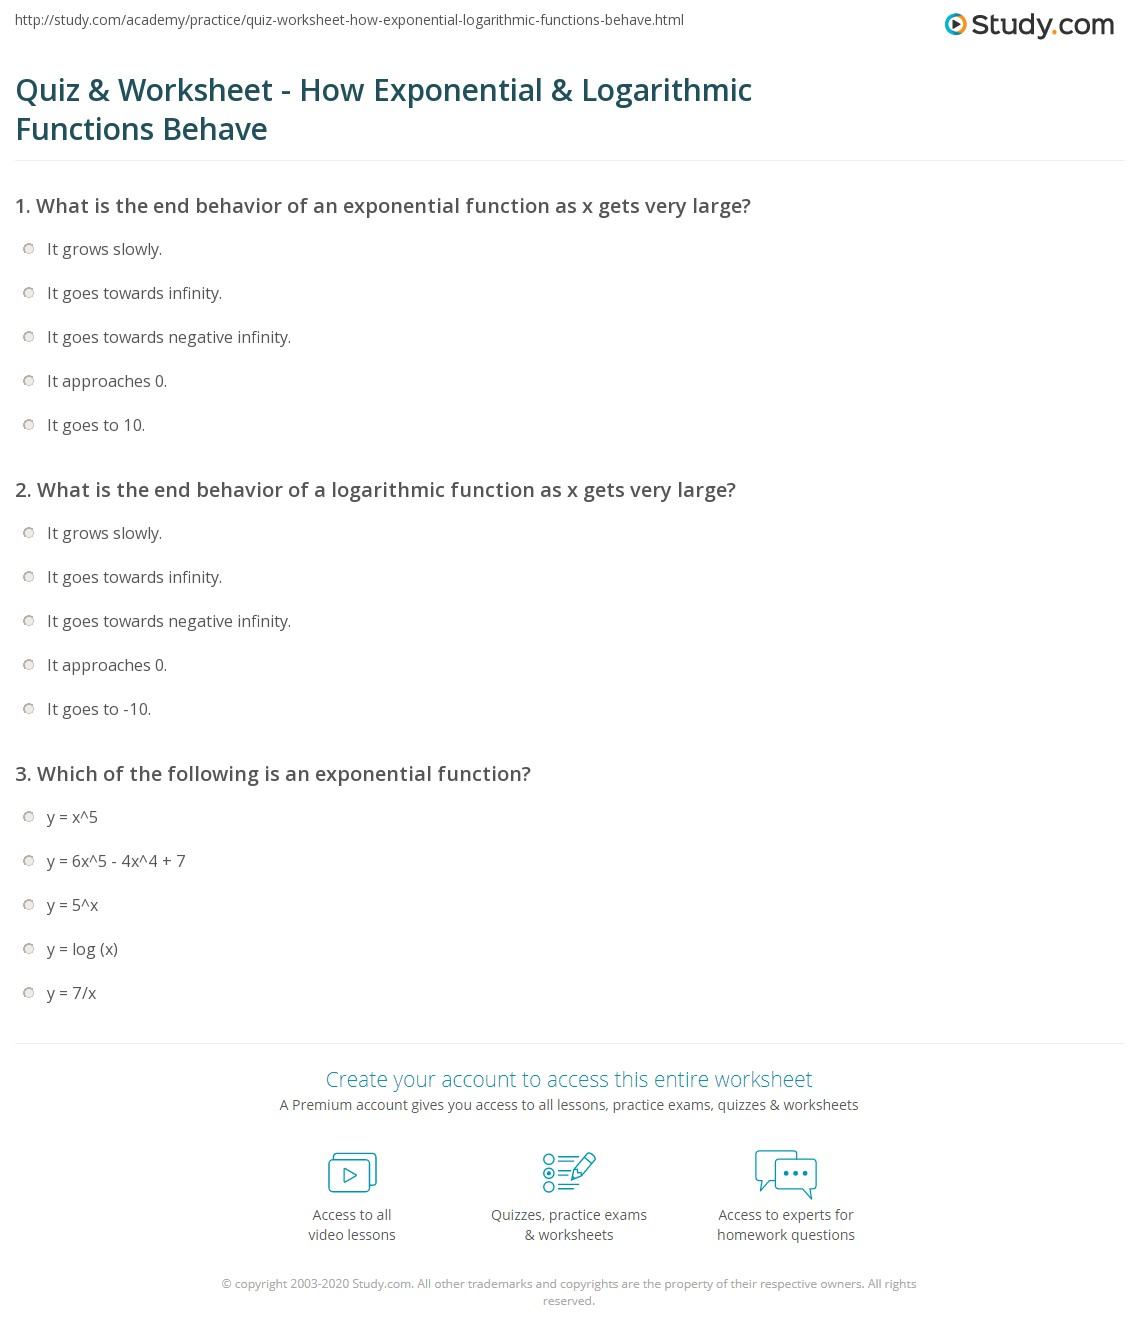 Exponential And Logarithmic Functions Worksheet Answers further  also Evaluating Exponents Functions Worksheets   Math Aids also  as well  moreover  moreover  in addition  also Transforming Exponential and Logarithmic Functions Worksheet Answers also  furthermore Exponential and logarithmic functions  worksheet with detailed likewise Chapter 3   Exponential and Logarithmic Functions further Solving Exponential And Logarithmic Functions Worksheet Answers also  as well Chapter 3 Exponential and Logarithmic Functions   ppt download besides . on exponential and logarithmic functions worksheet